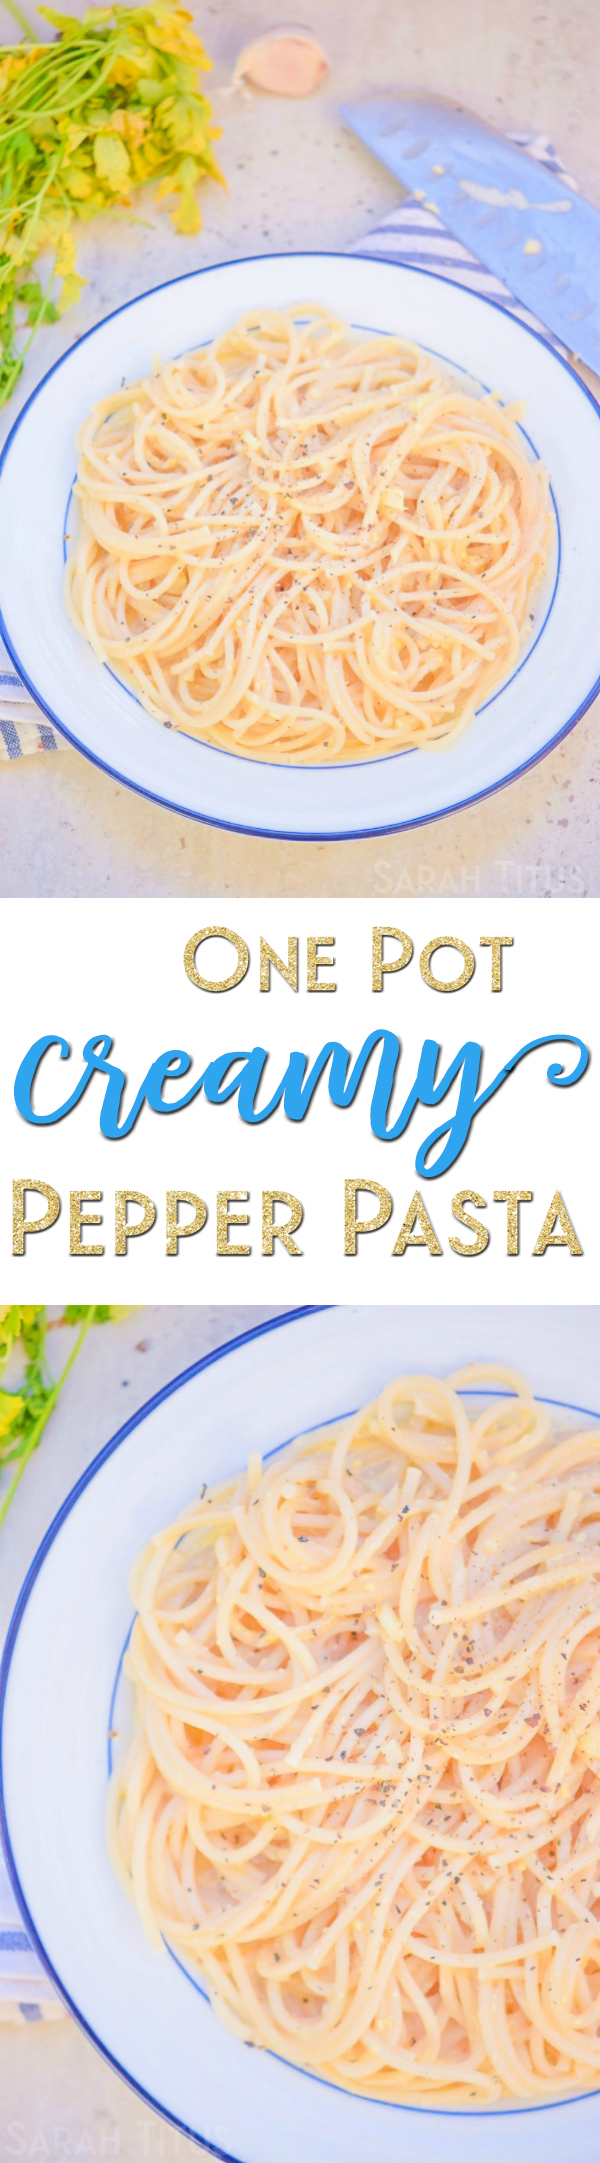 When life gets hectic during the week, this is your saving grace! This One Pot Creamy Pepper Pasta is delicious, easy to make, and a huge hit with family!